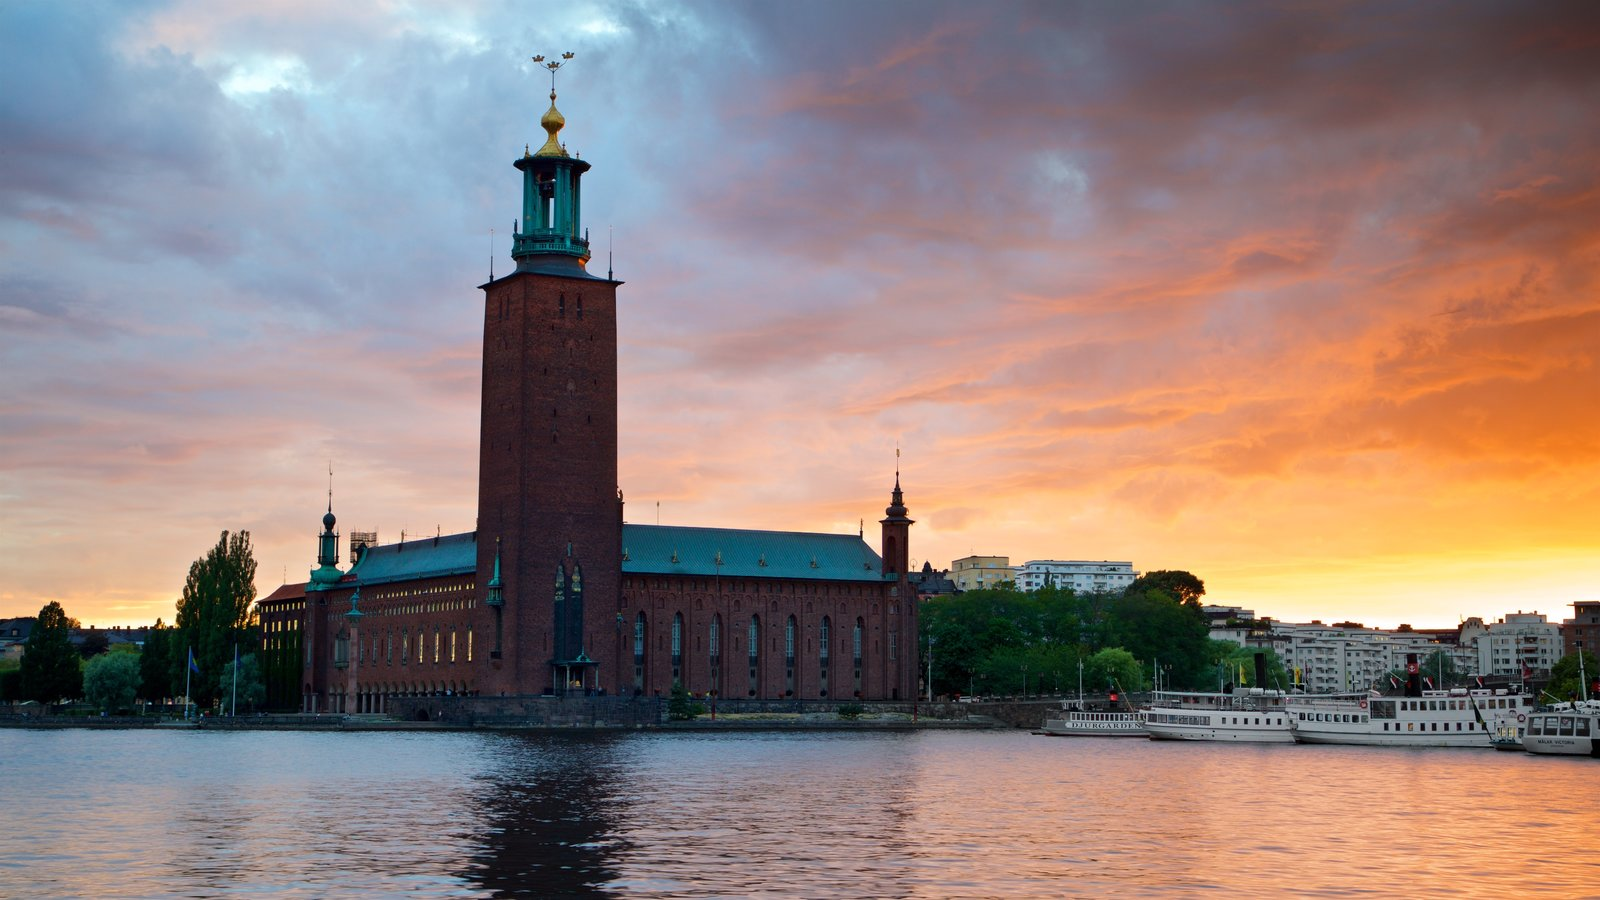 Stockholm City Hall which includes a bay or harbour, heritage architecture and a sunset